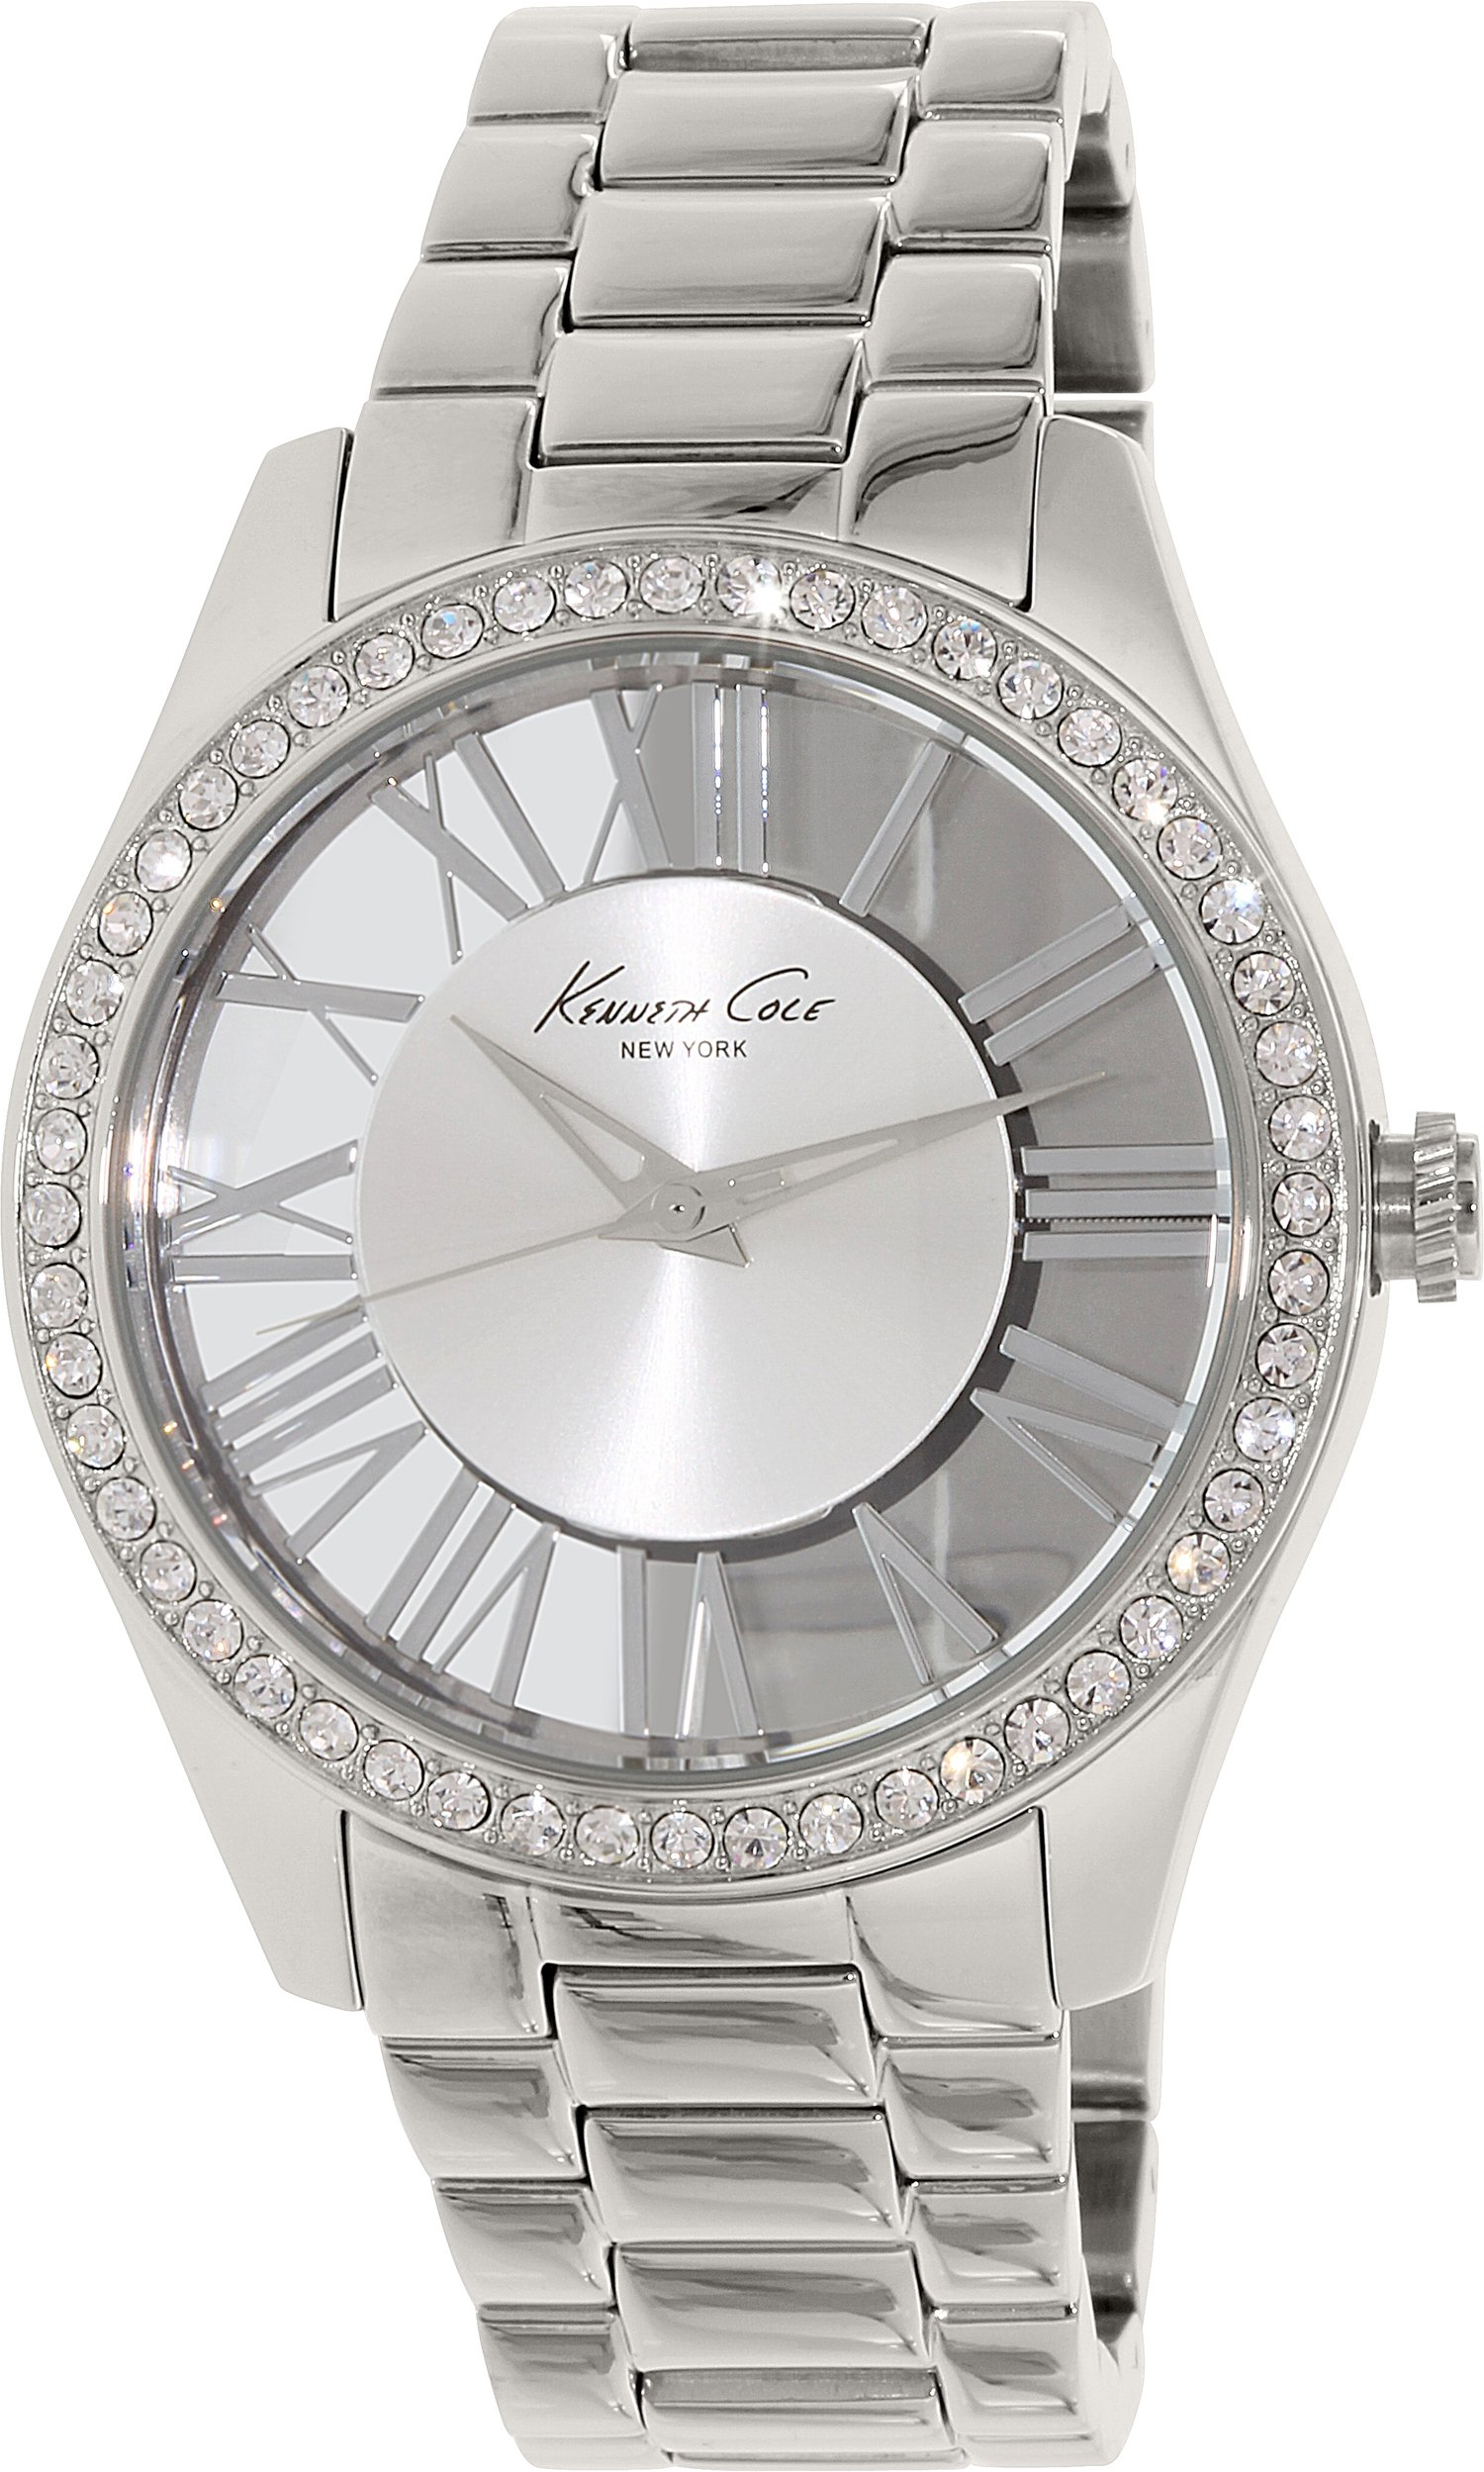 Kenneth Cole New York Women's KC4851 ''Transparency'' Crystal-Accented Stainless Steel Watch